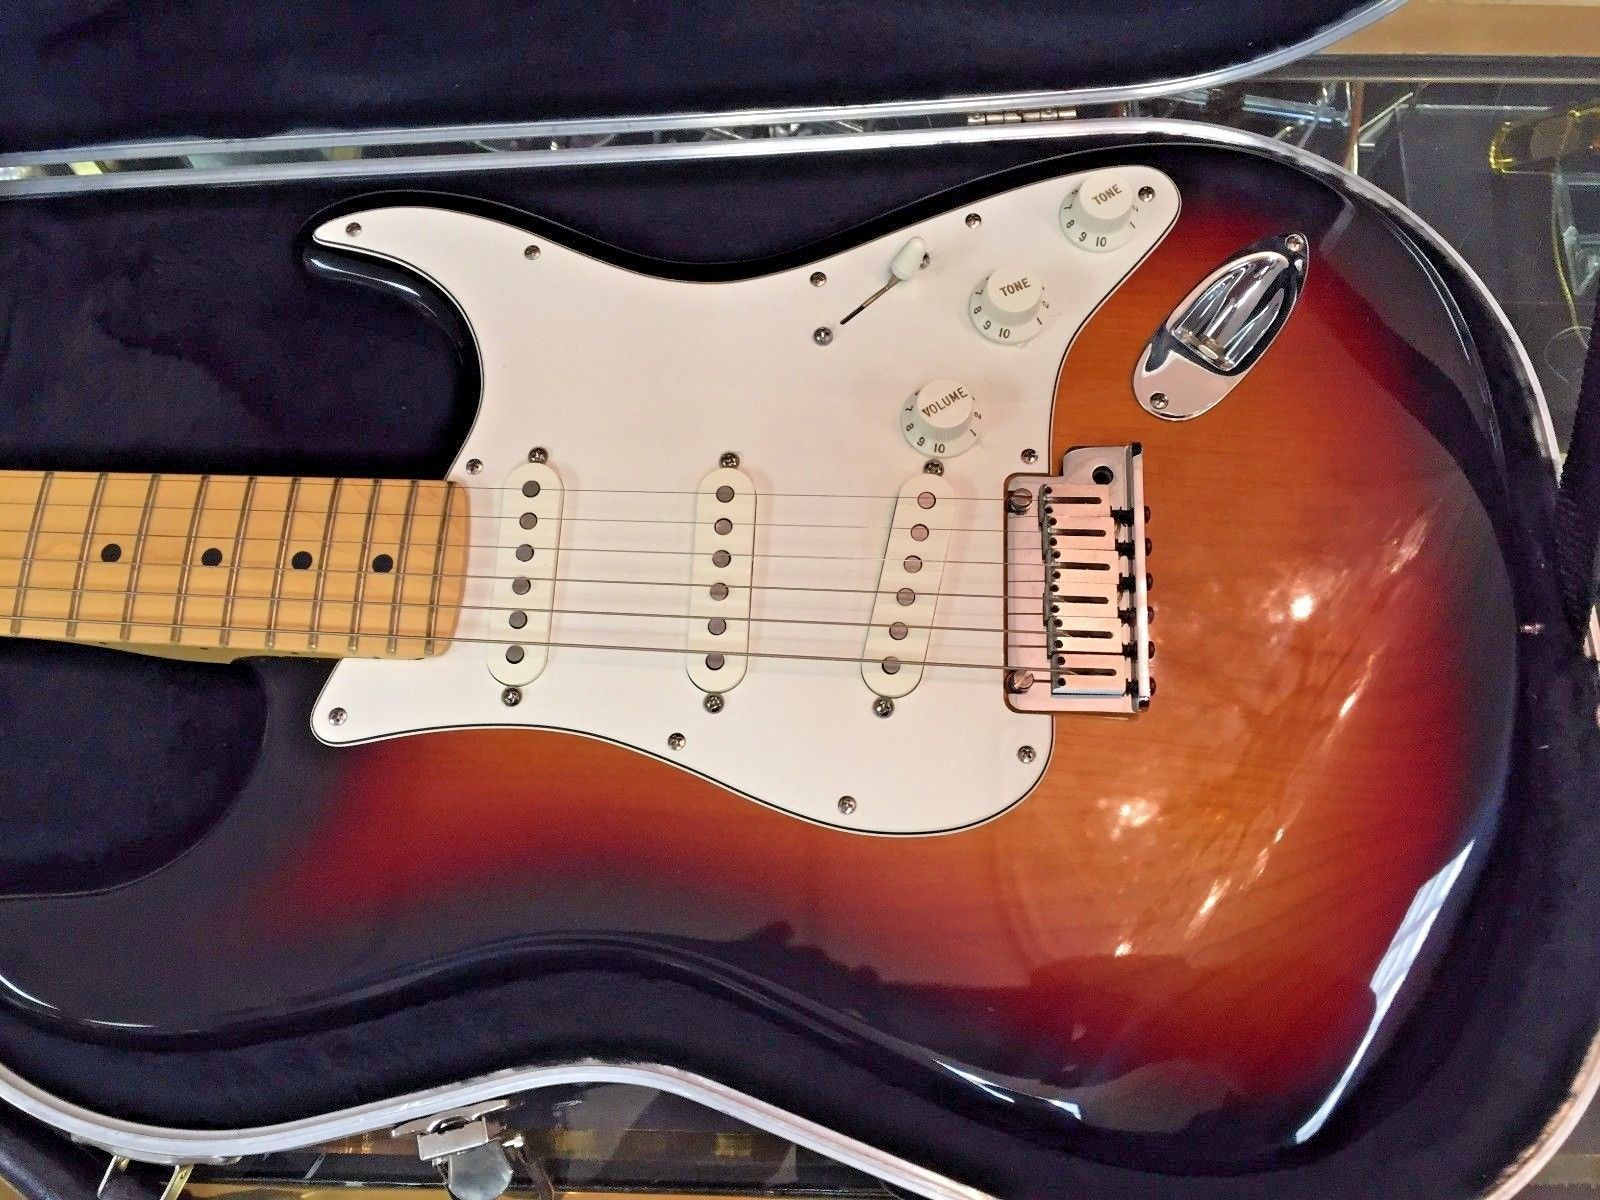 """`Fender 2001 American Sunburst USA Stratocaster with Case"""" NEVER USED"""" ZI 003315"""